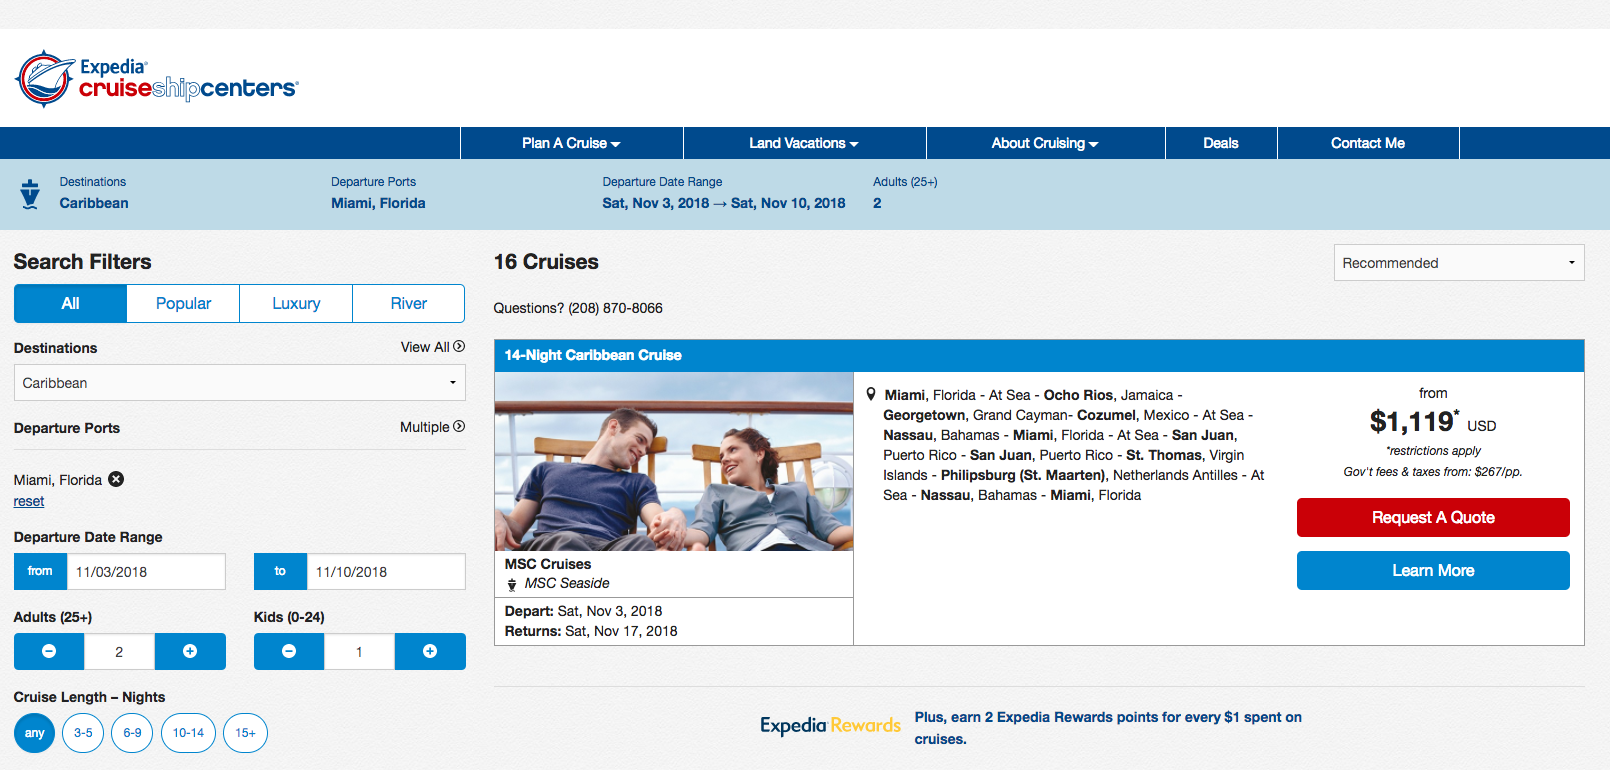 Expedia-CruiseShipCenters-Travel-Insurance-Search | AardvarkCompare.com